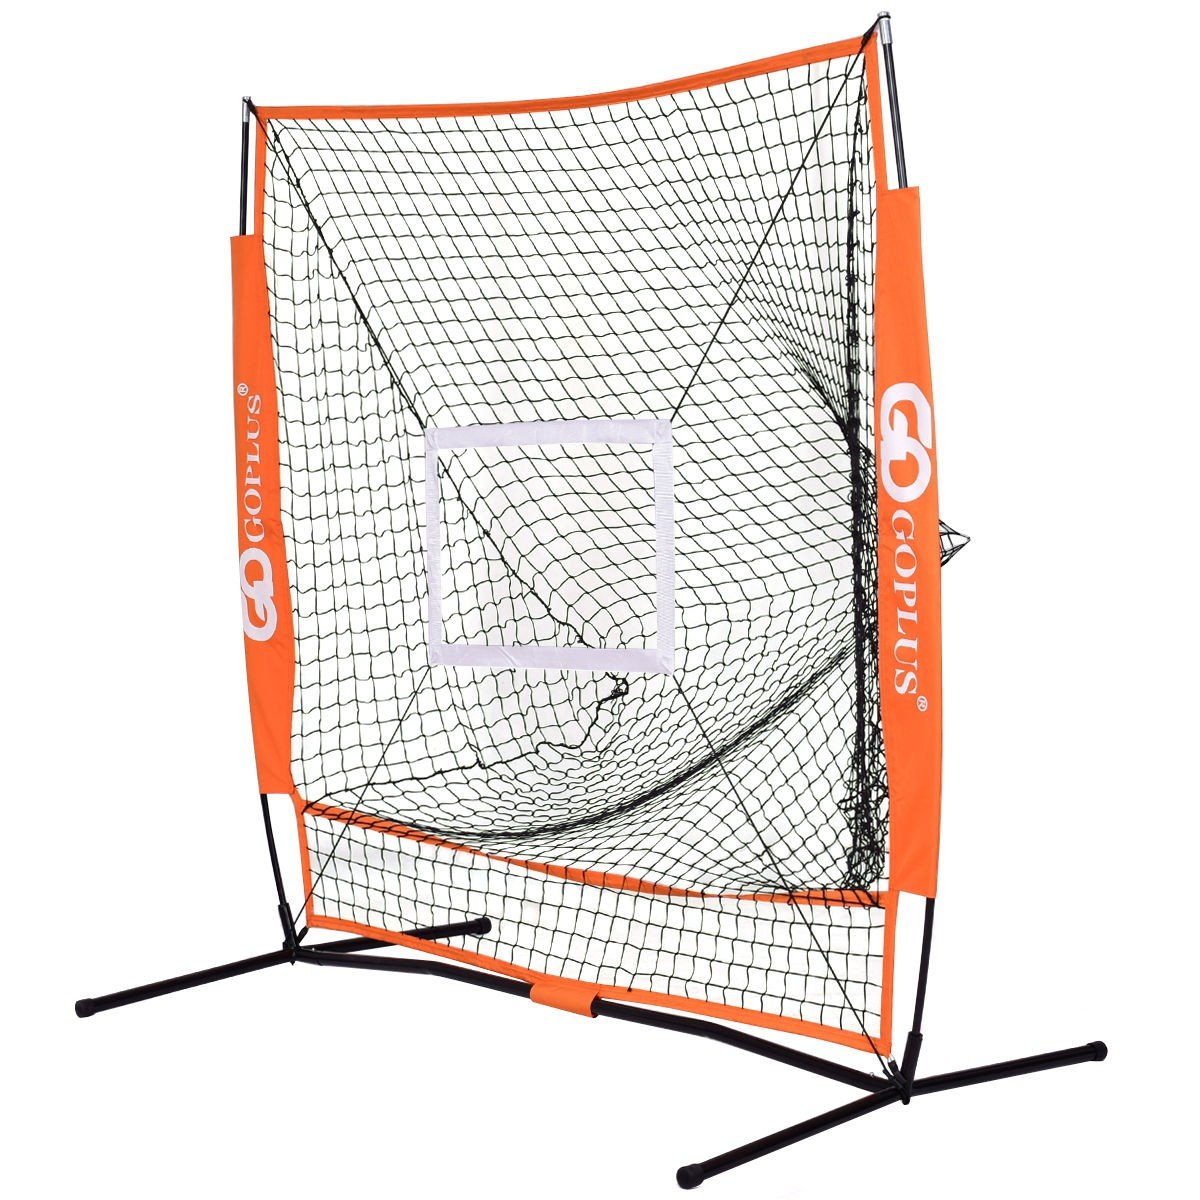 LordBee Orange 5' × 5' New Practice Hitting Baseball Net Fielding, Pitching, Soft Toss, Tee Ball Outdoor Sport Game by LordBee